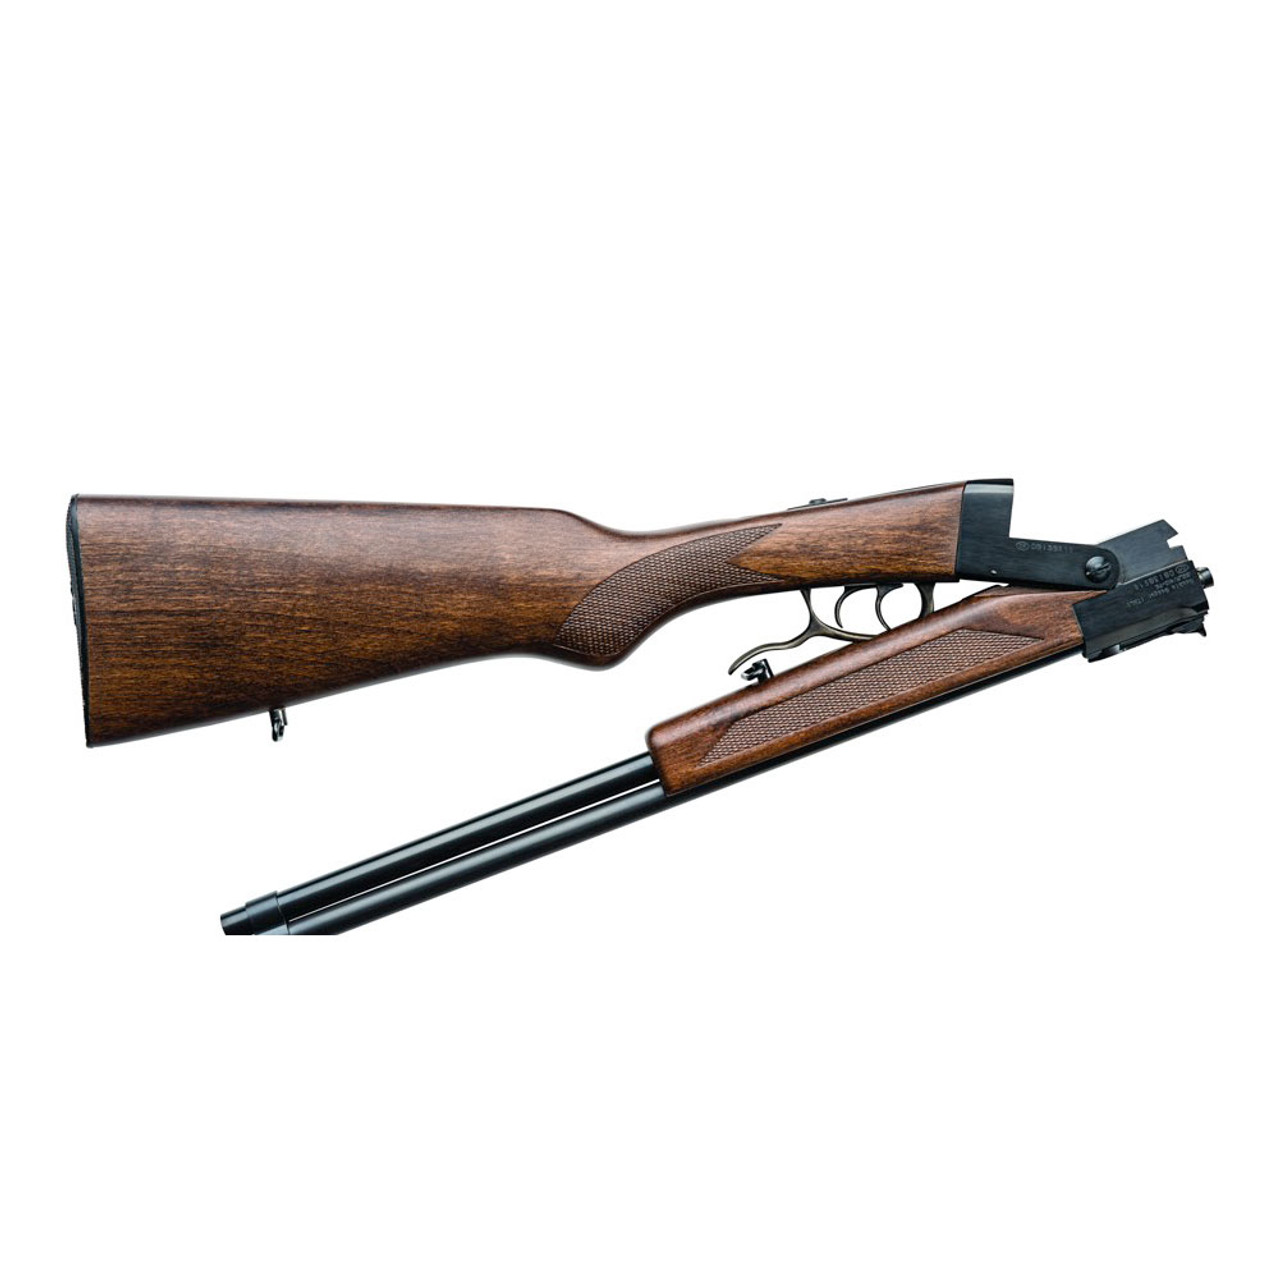 CHIAPPA FIREARMS Double Badger  22 LR/ 410 Gauge 19in 2rd Over/Under Rifle  (500-097)